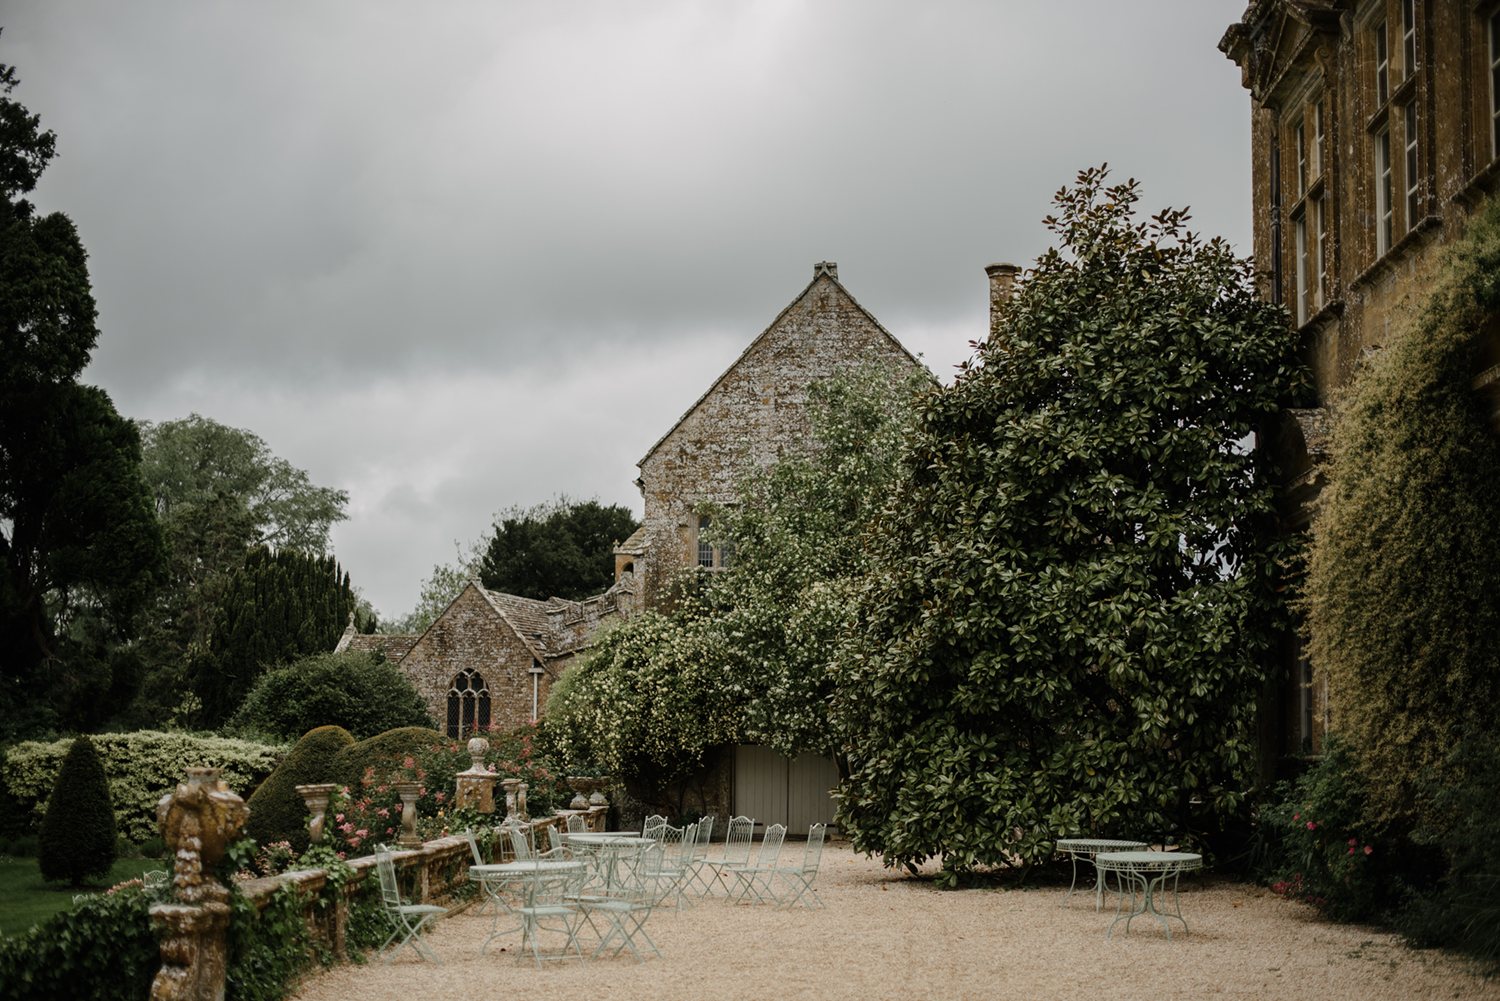 Brympton-House-Wedding-Photographer-018.jpg